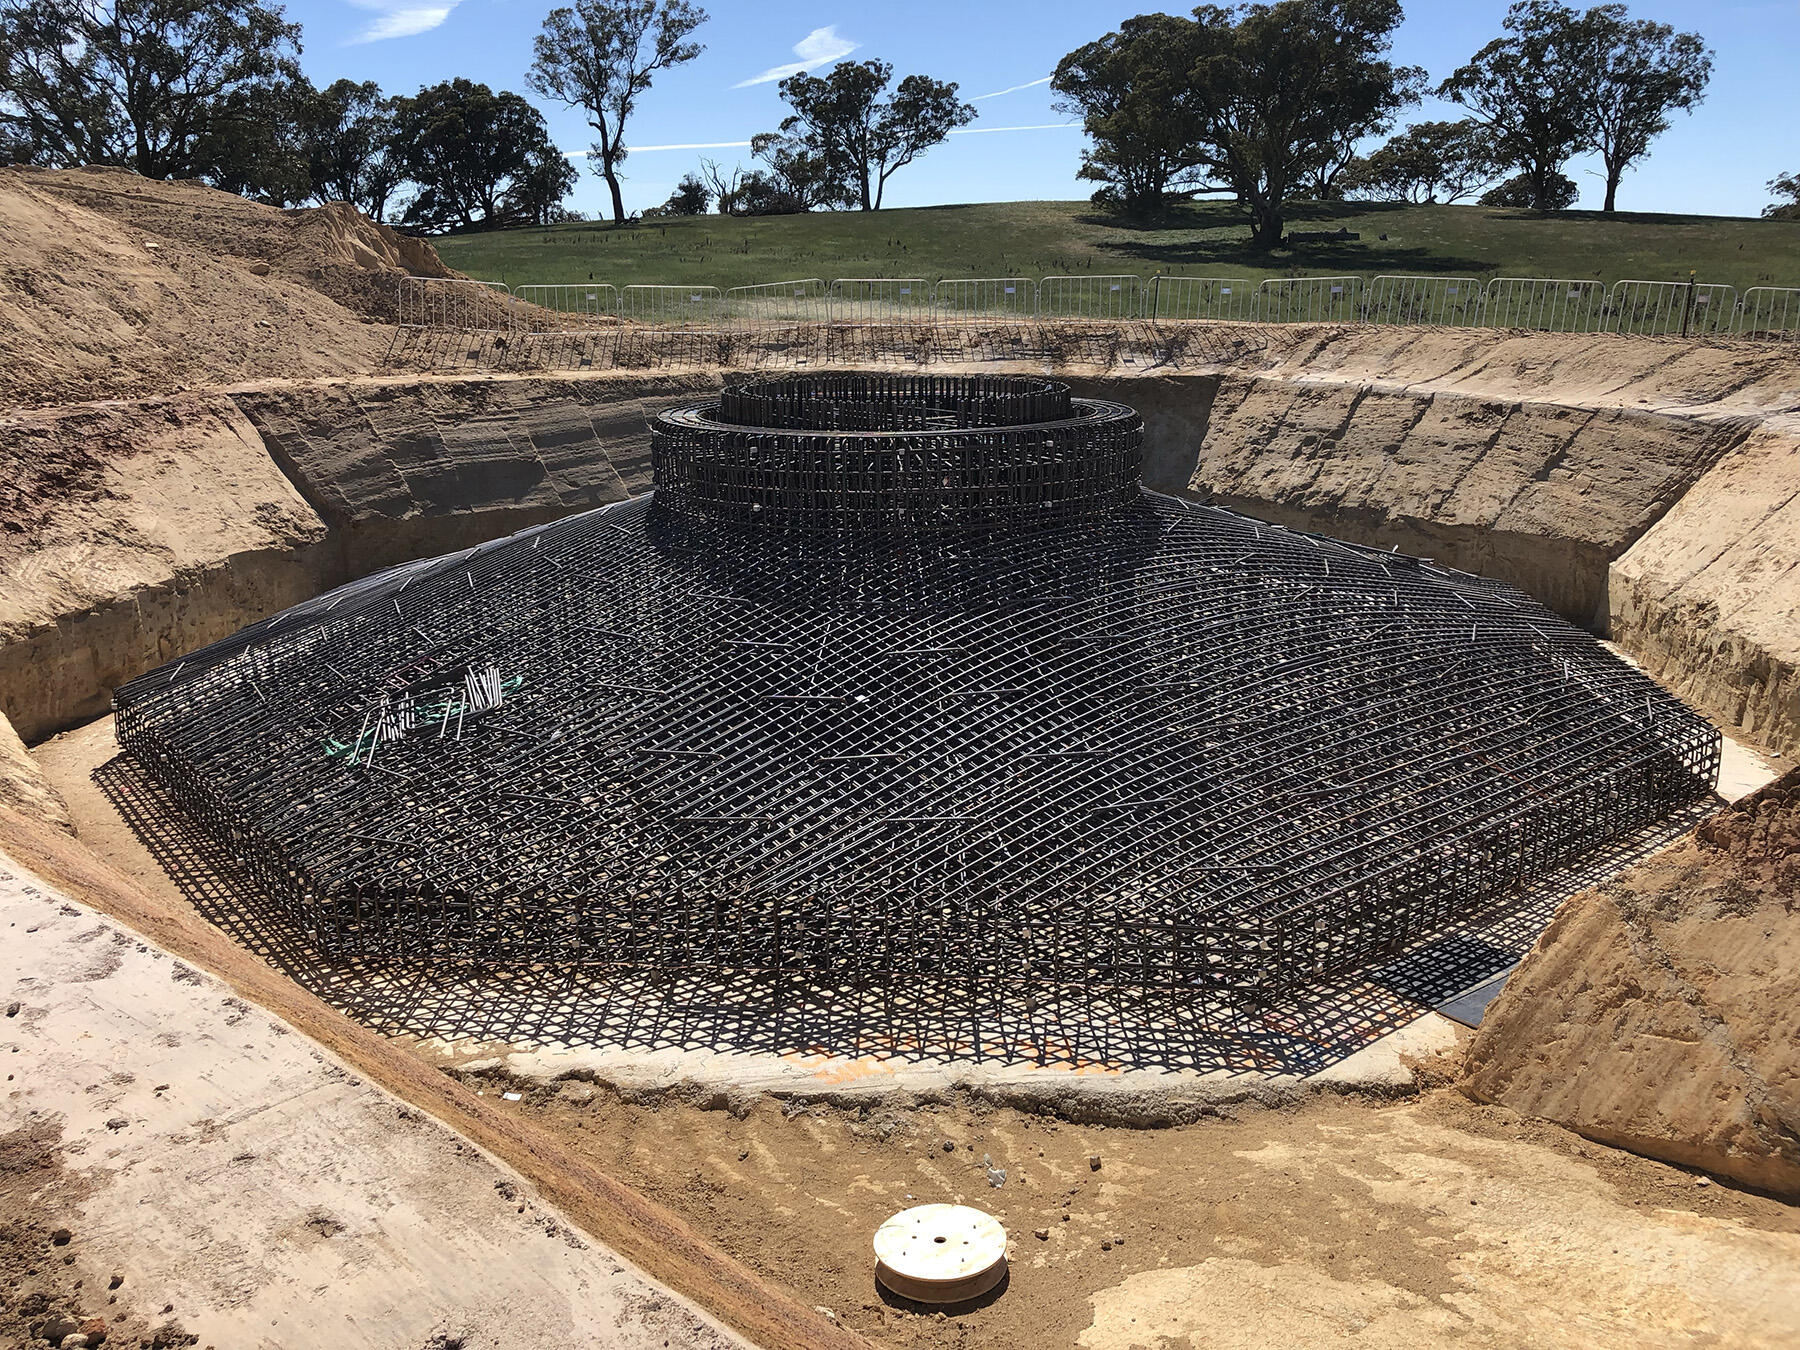 Reinforcement completed; next step is to install formwork.